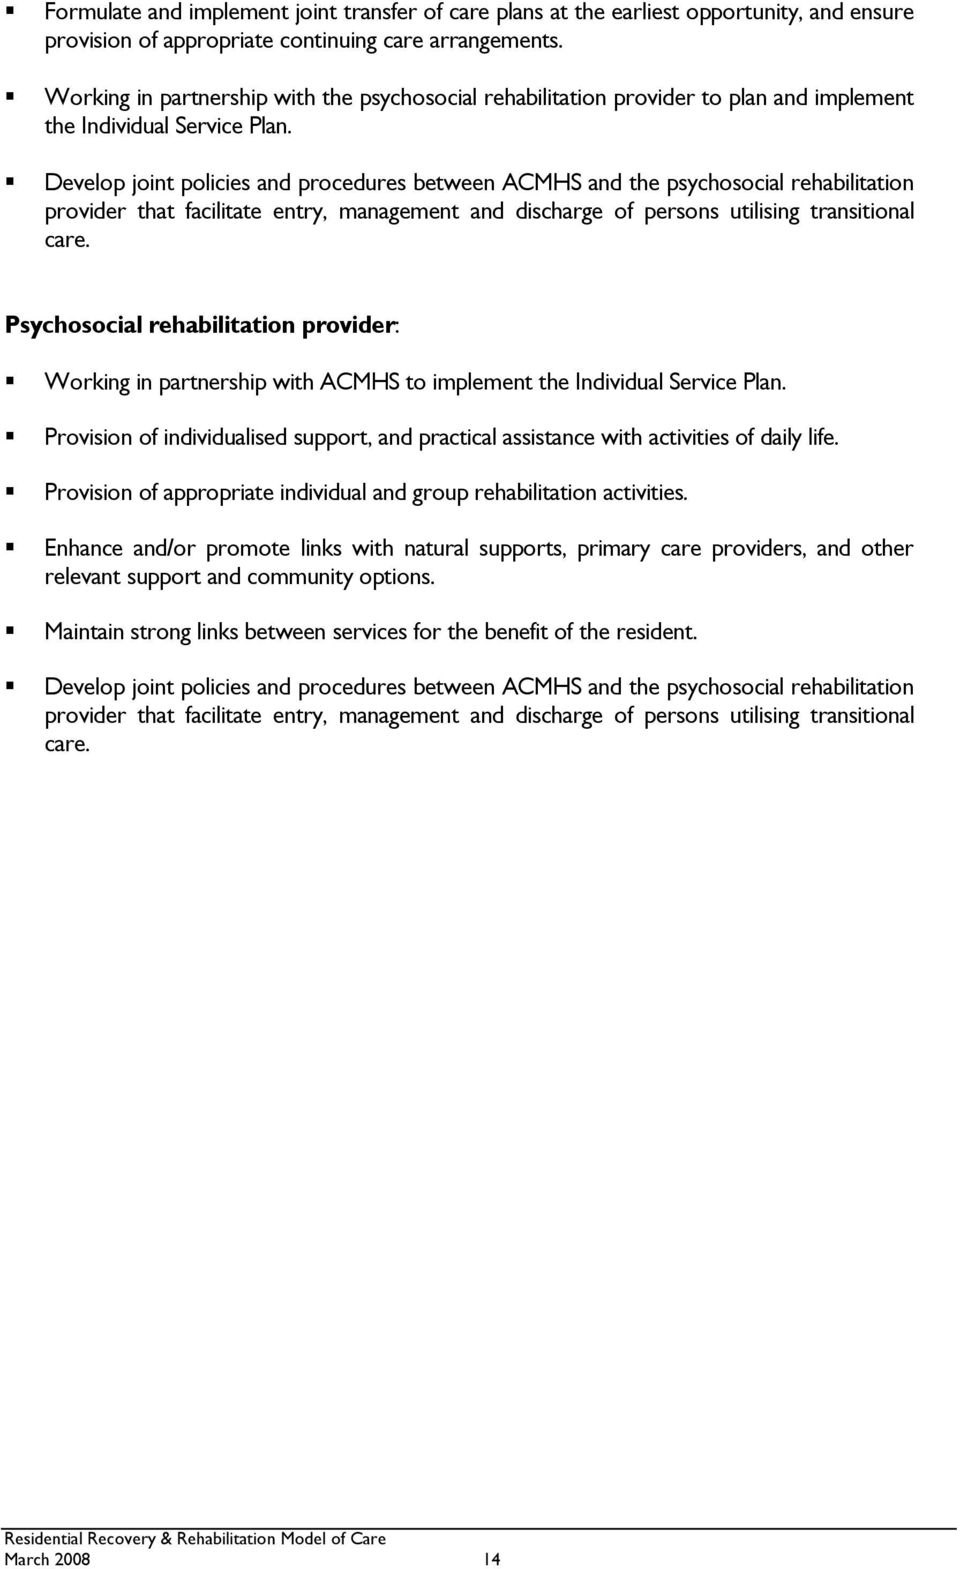 Develop joint policies and procedures between ACMHS and the psychosocial rehabilitation provider that facilitate entry, management and discharge of persons utilising transitional care.